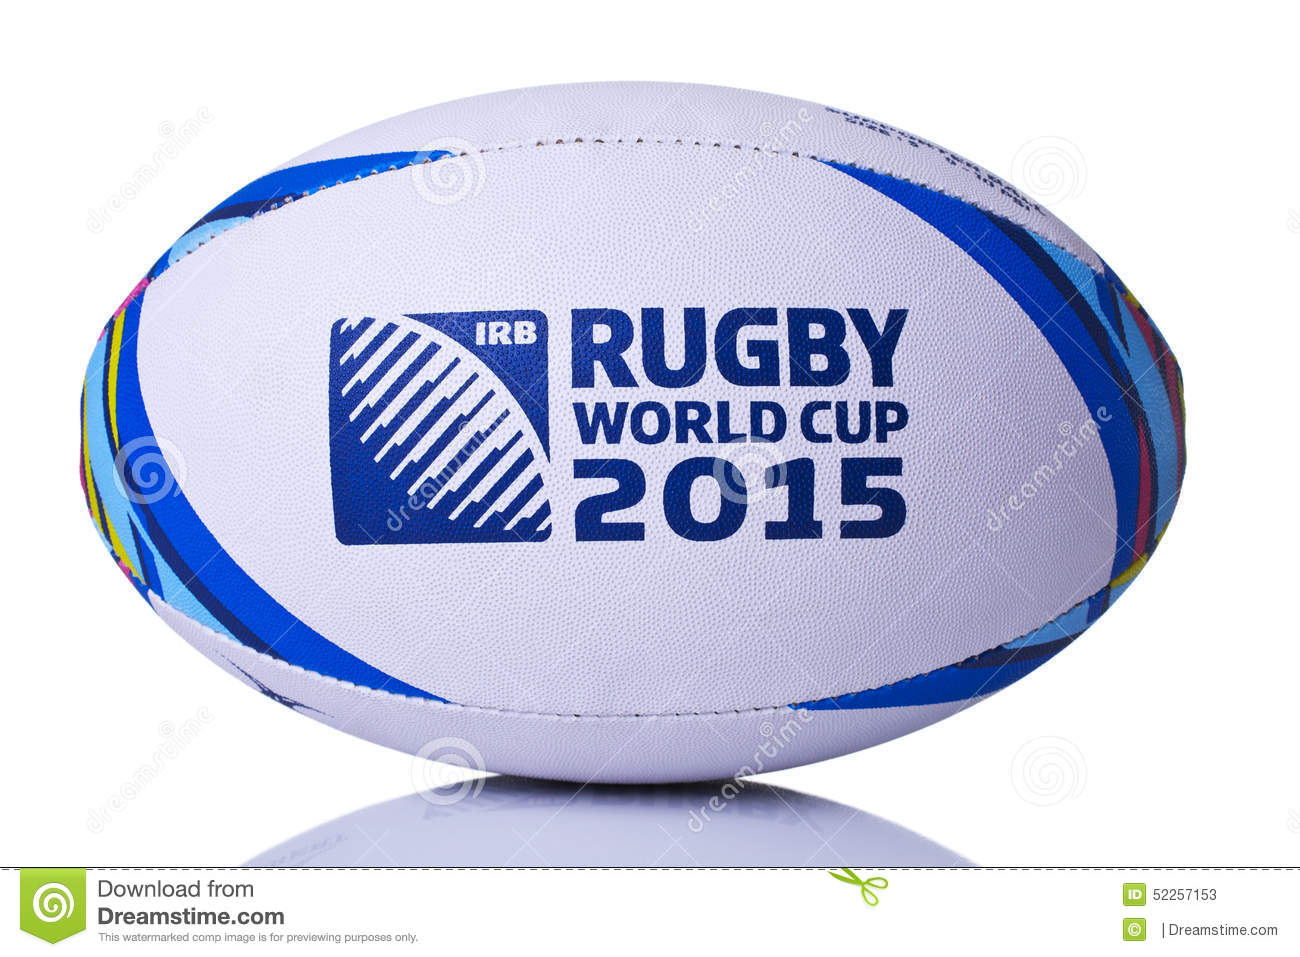 Rugby world cup clipart.